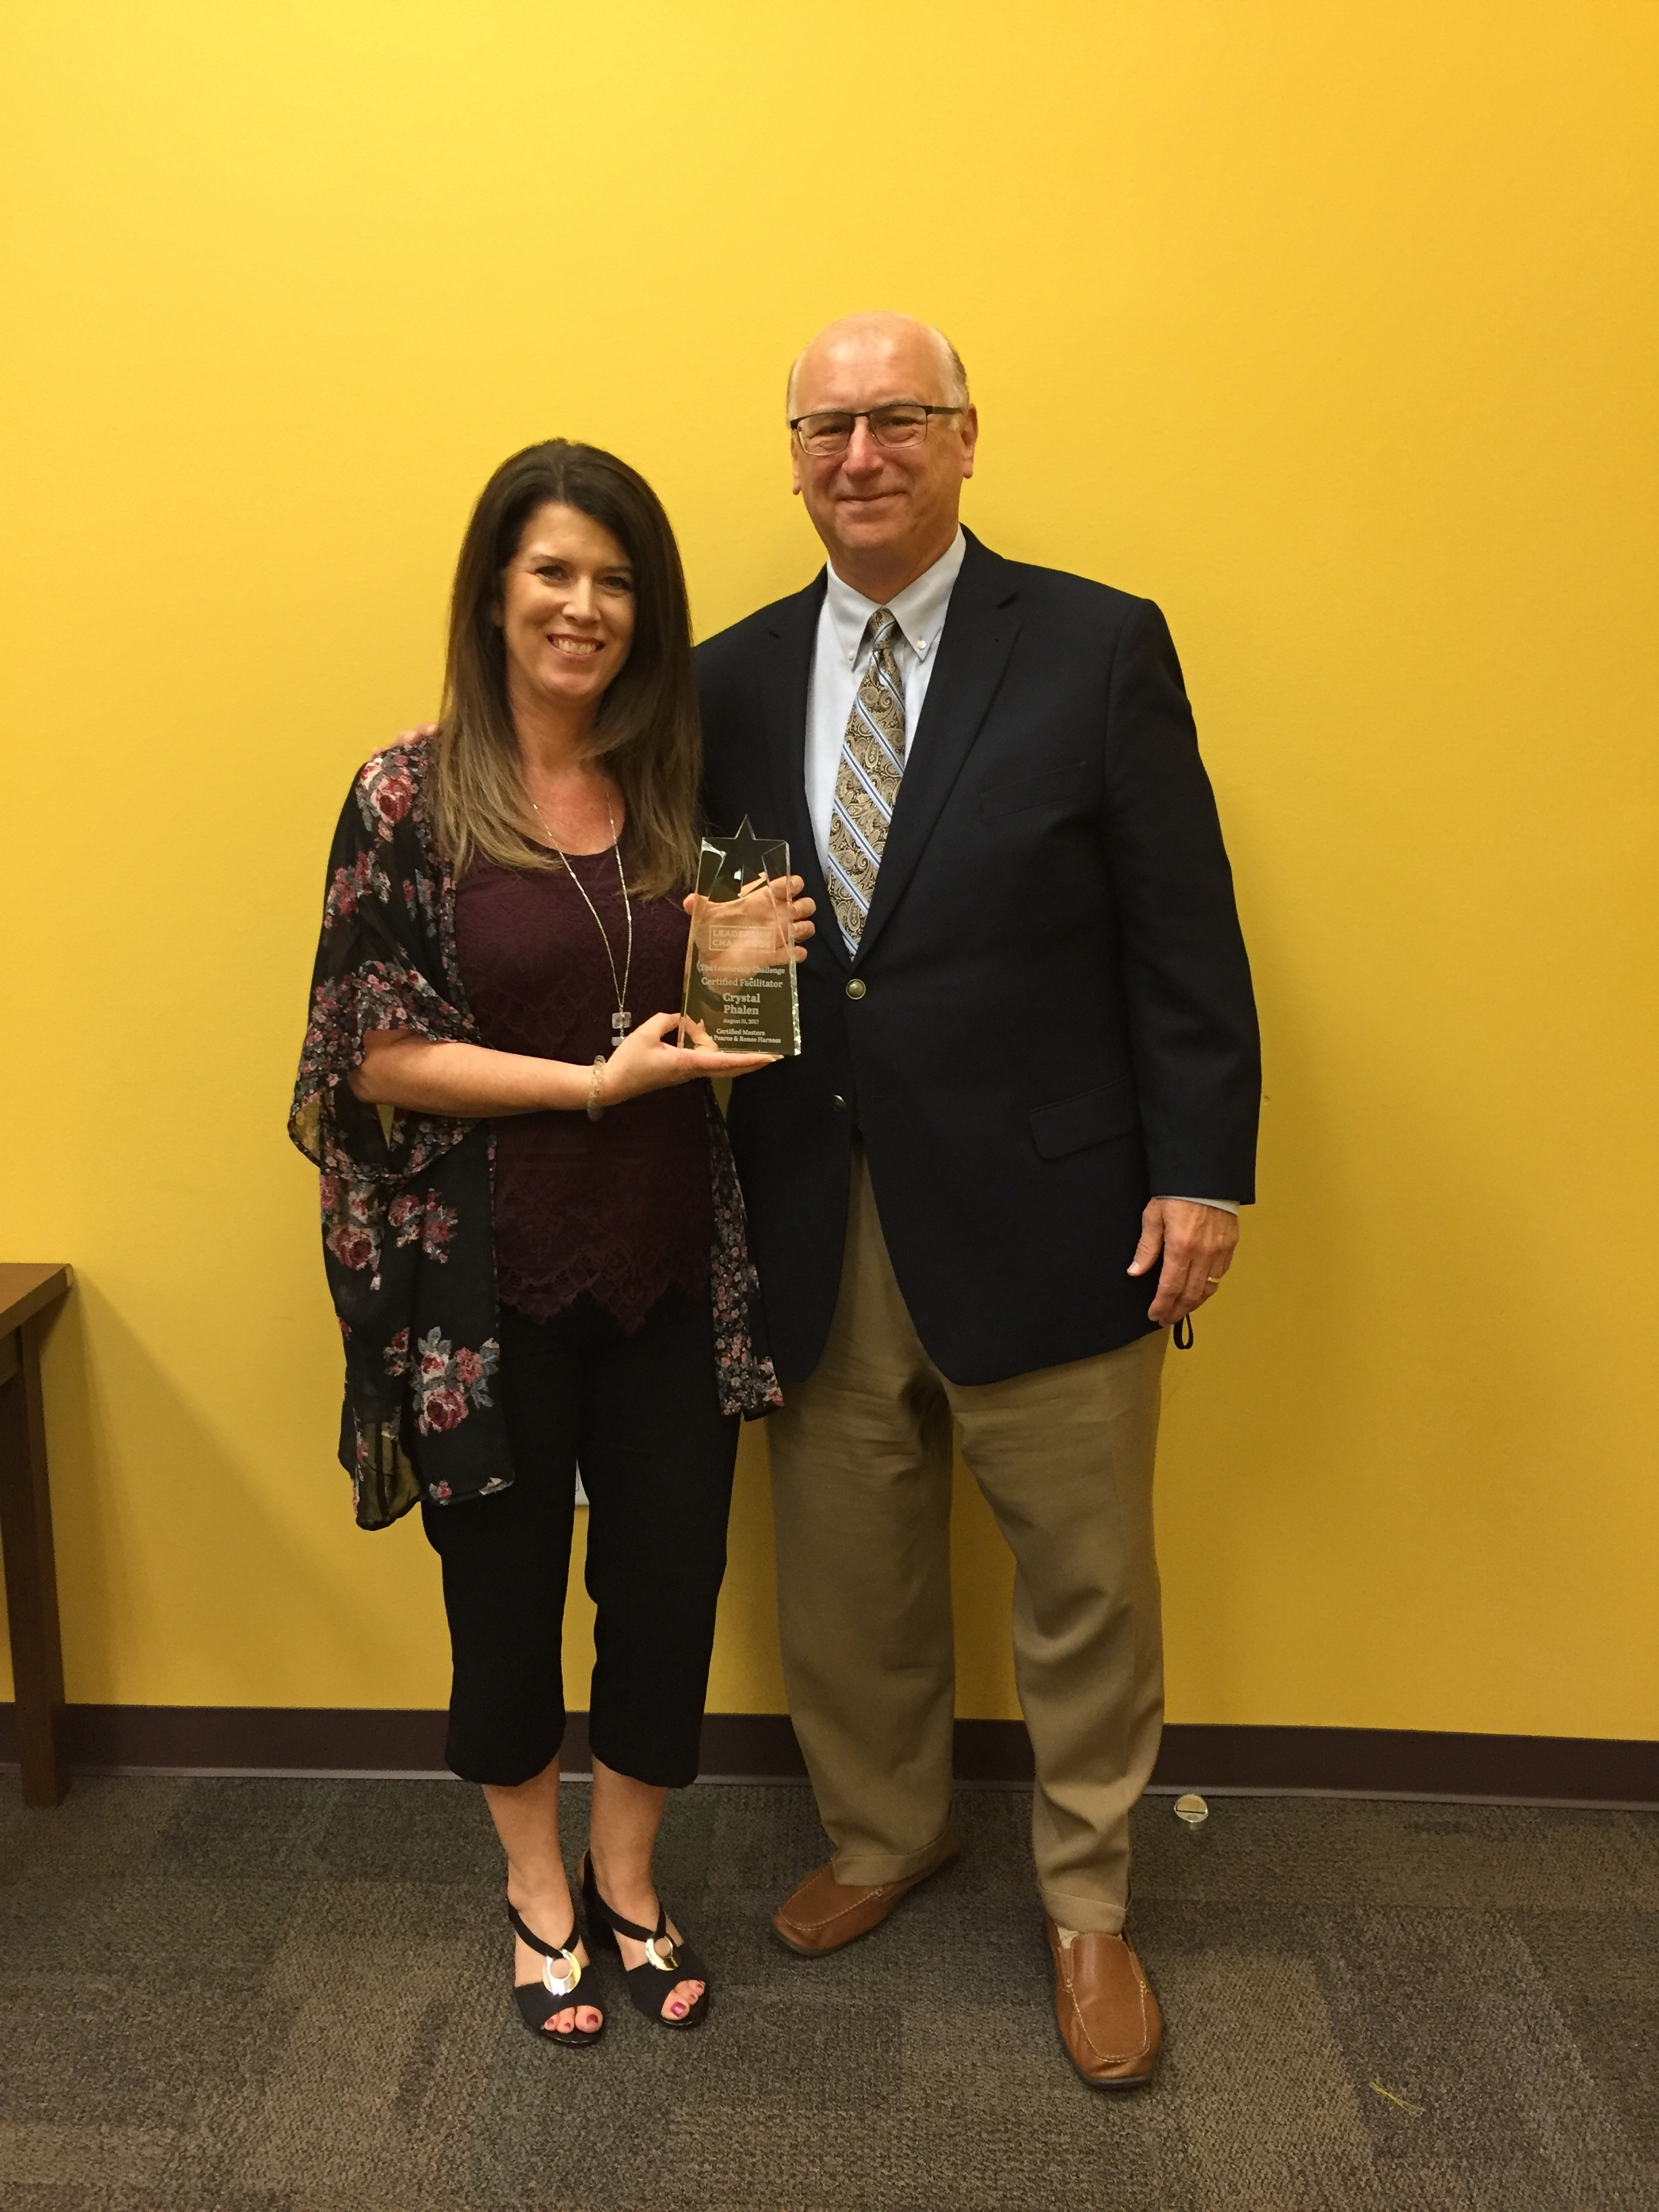 Tom with Crystal Phalen as she achieves her Certified Facilitator award.